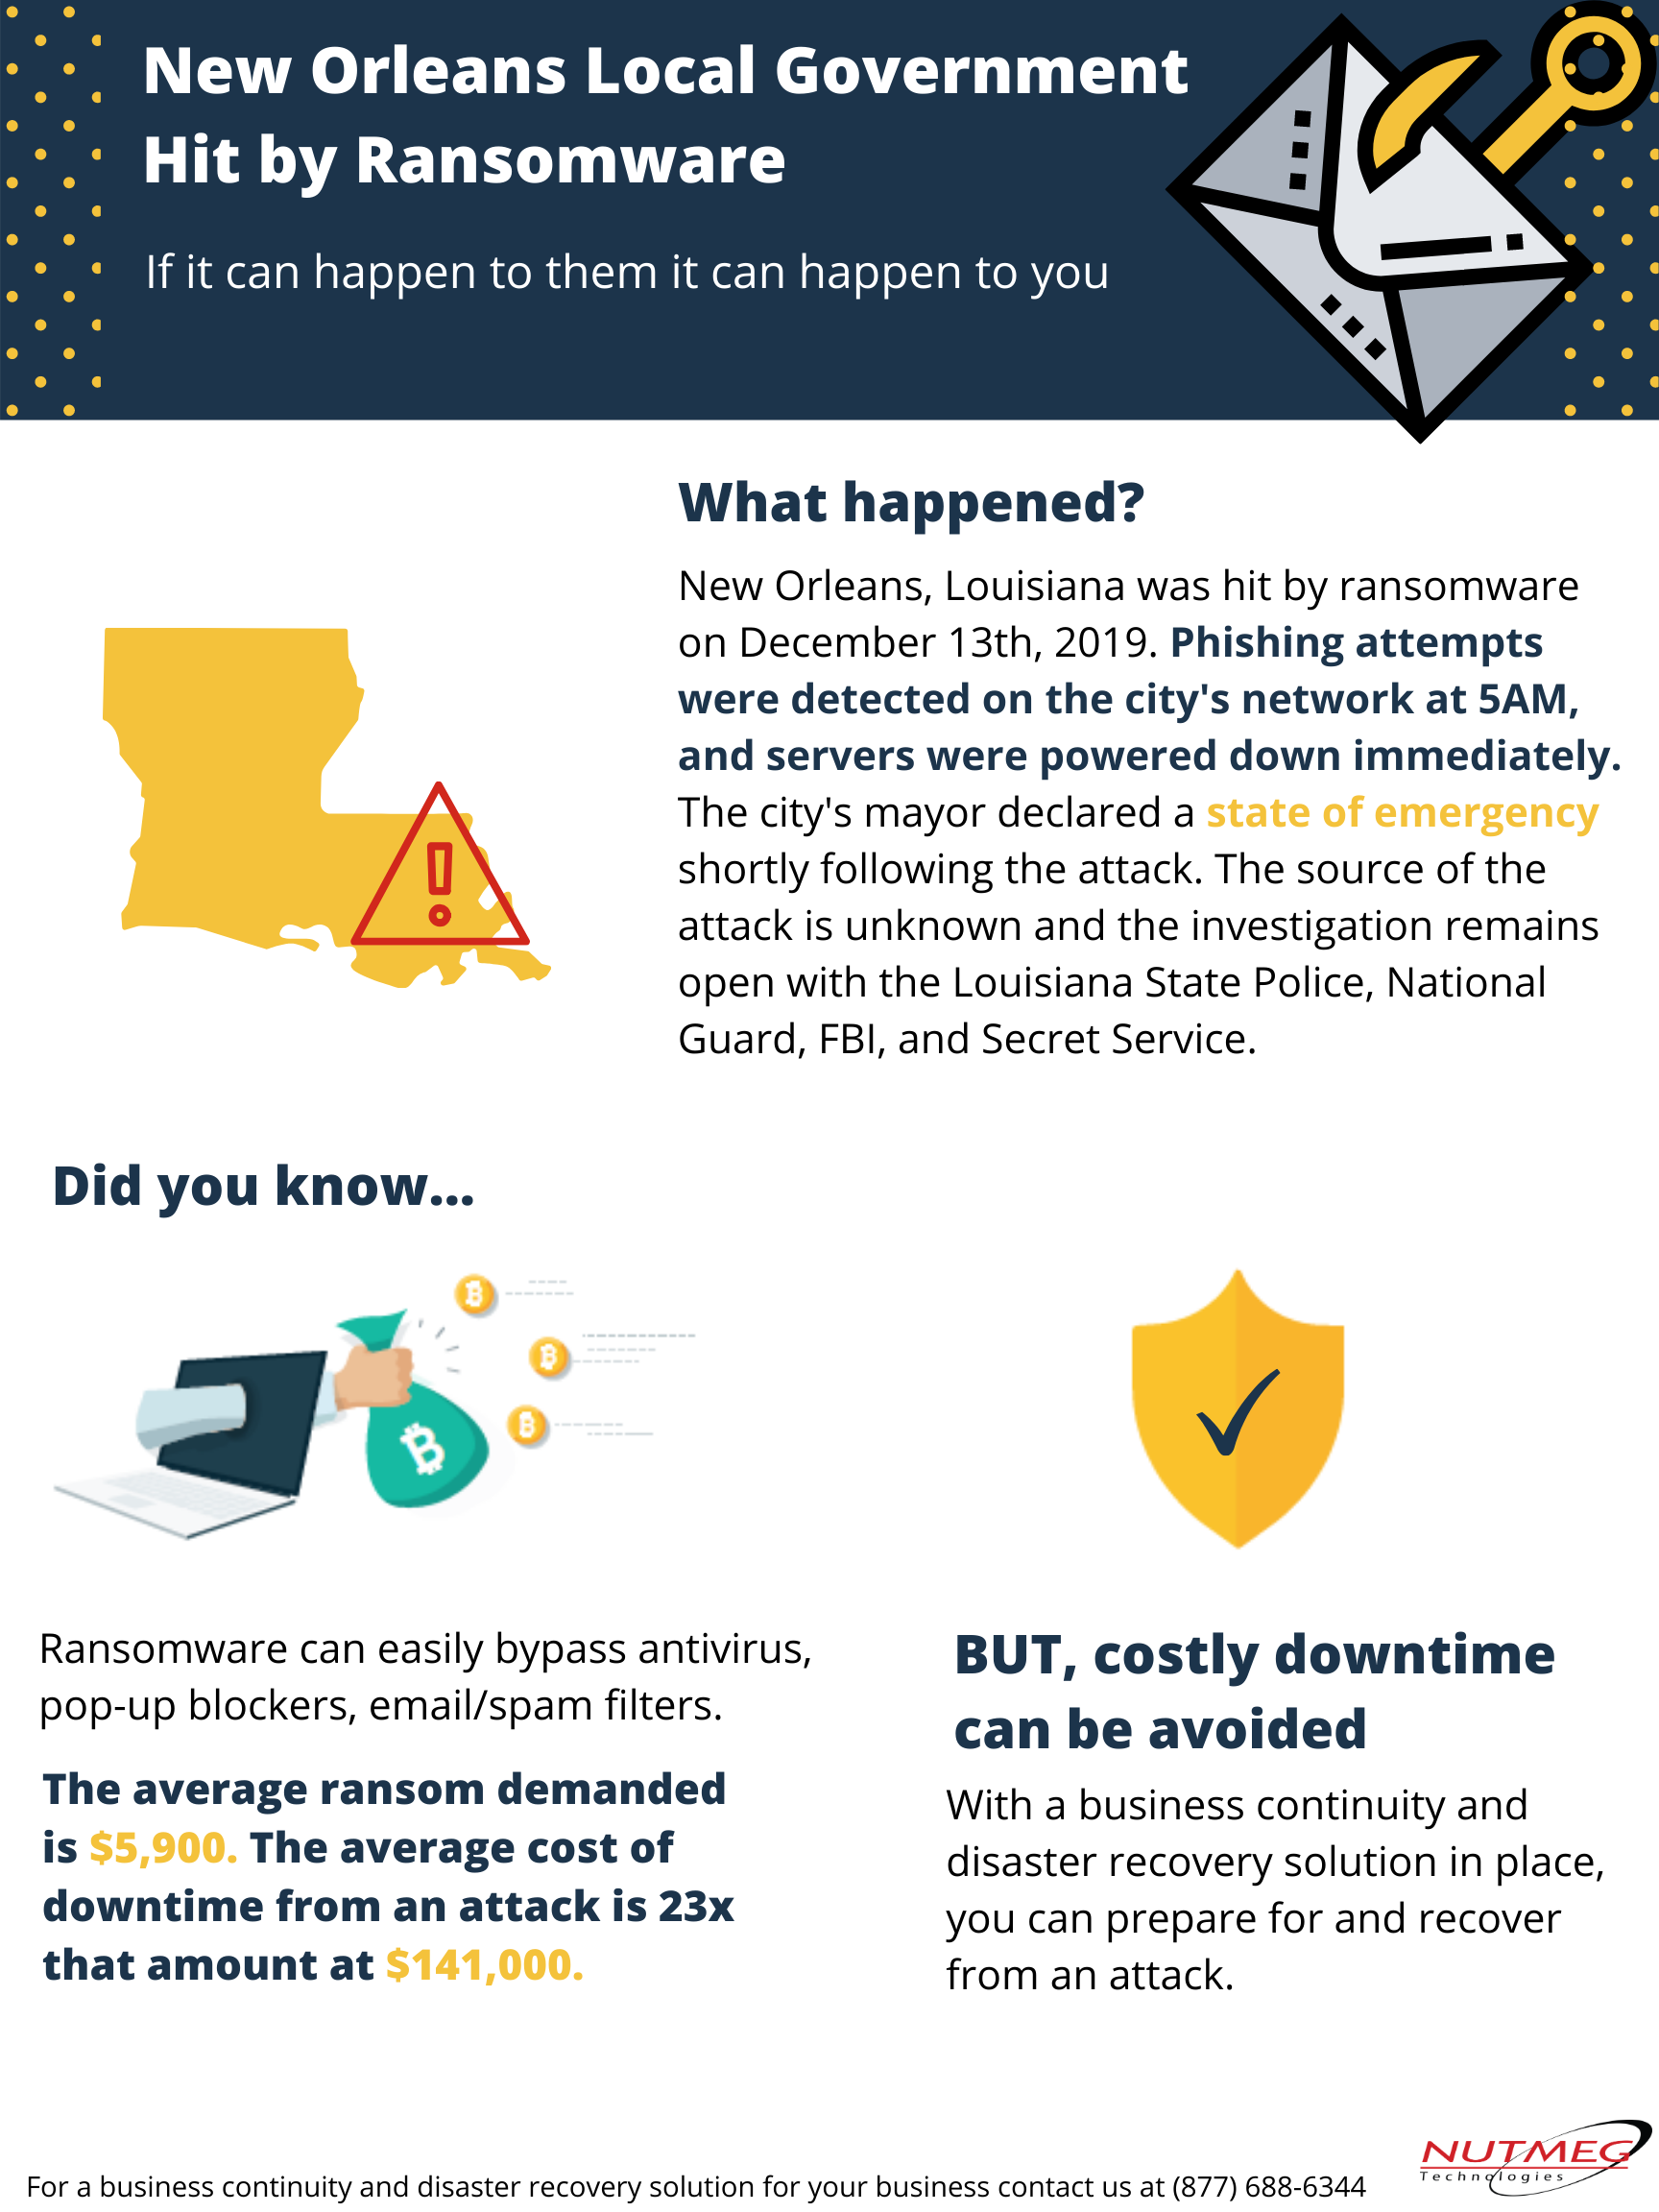 New Orleans government hit by Ransomware attack